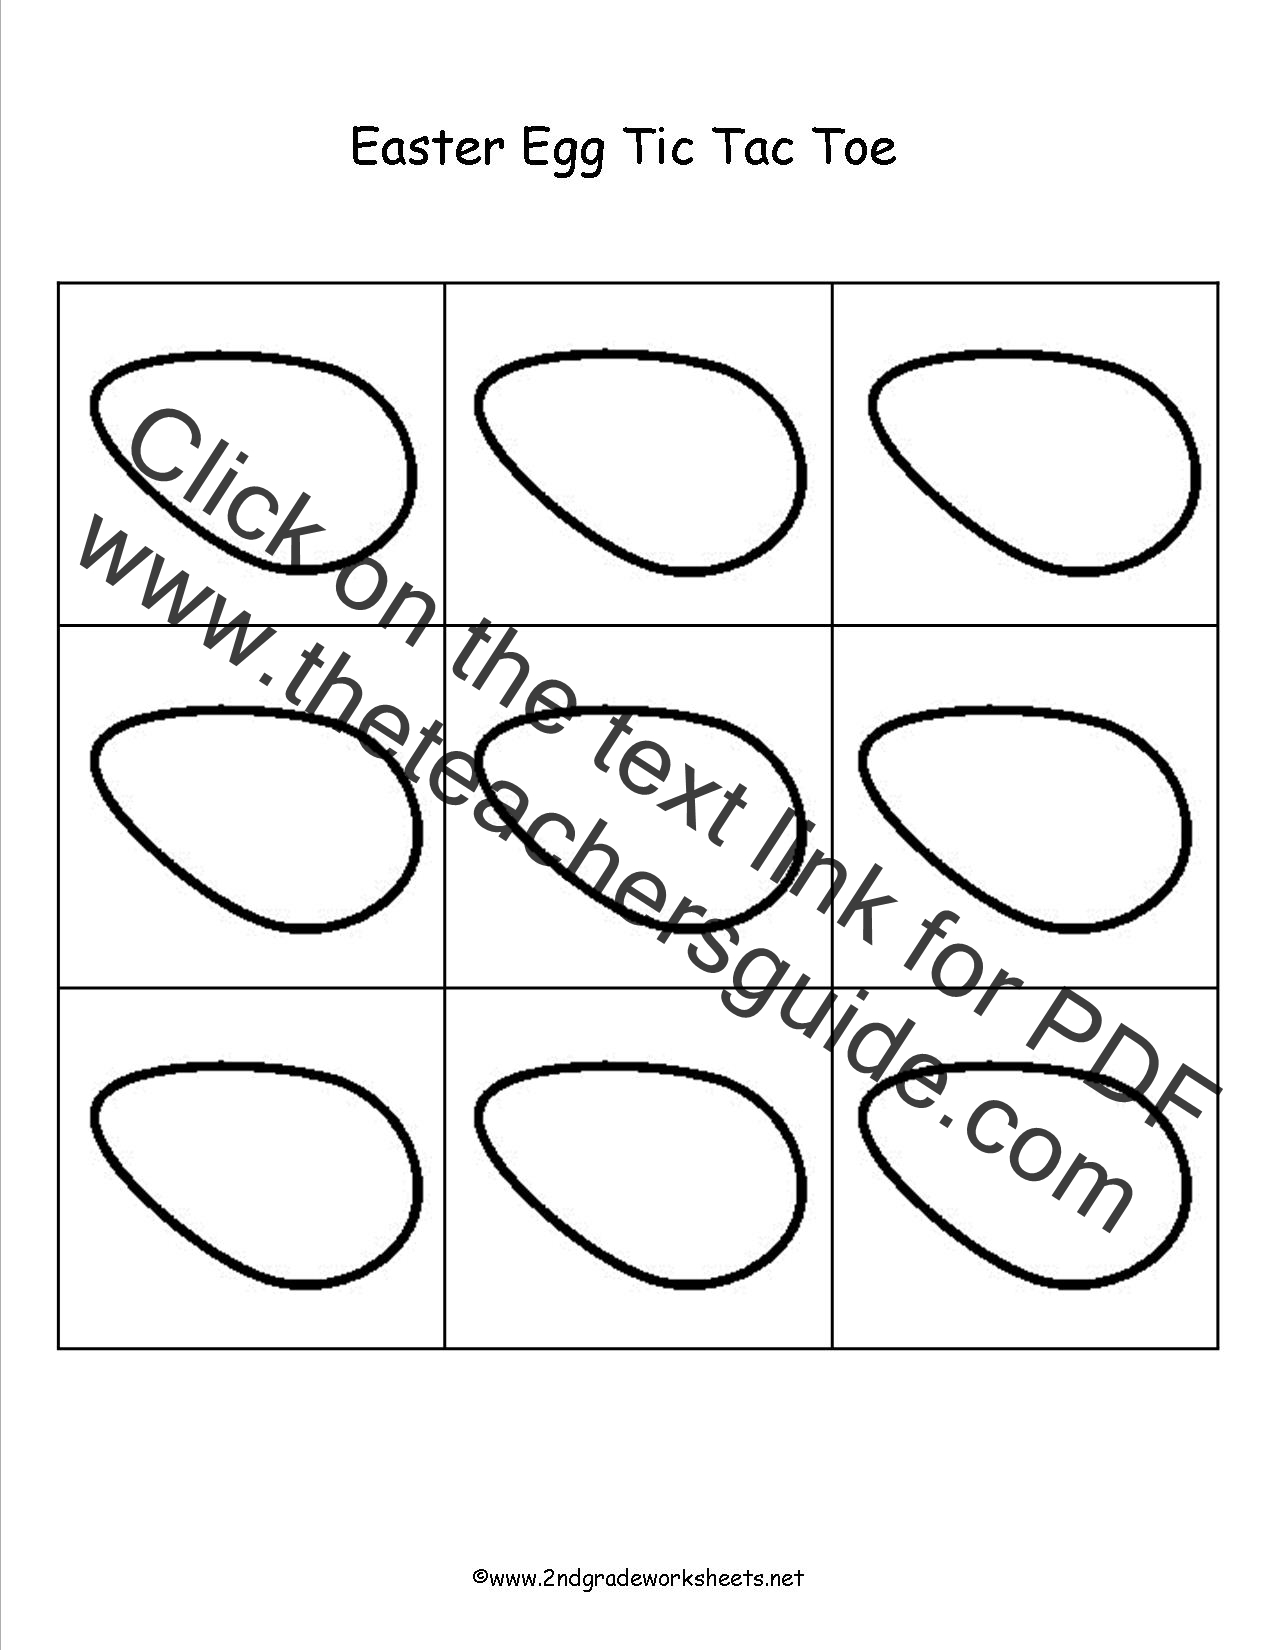 Easter Worksheets and Printouts – Tic Tac Toe Math Worksheets